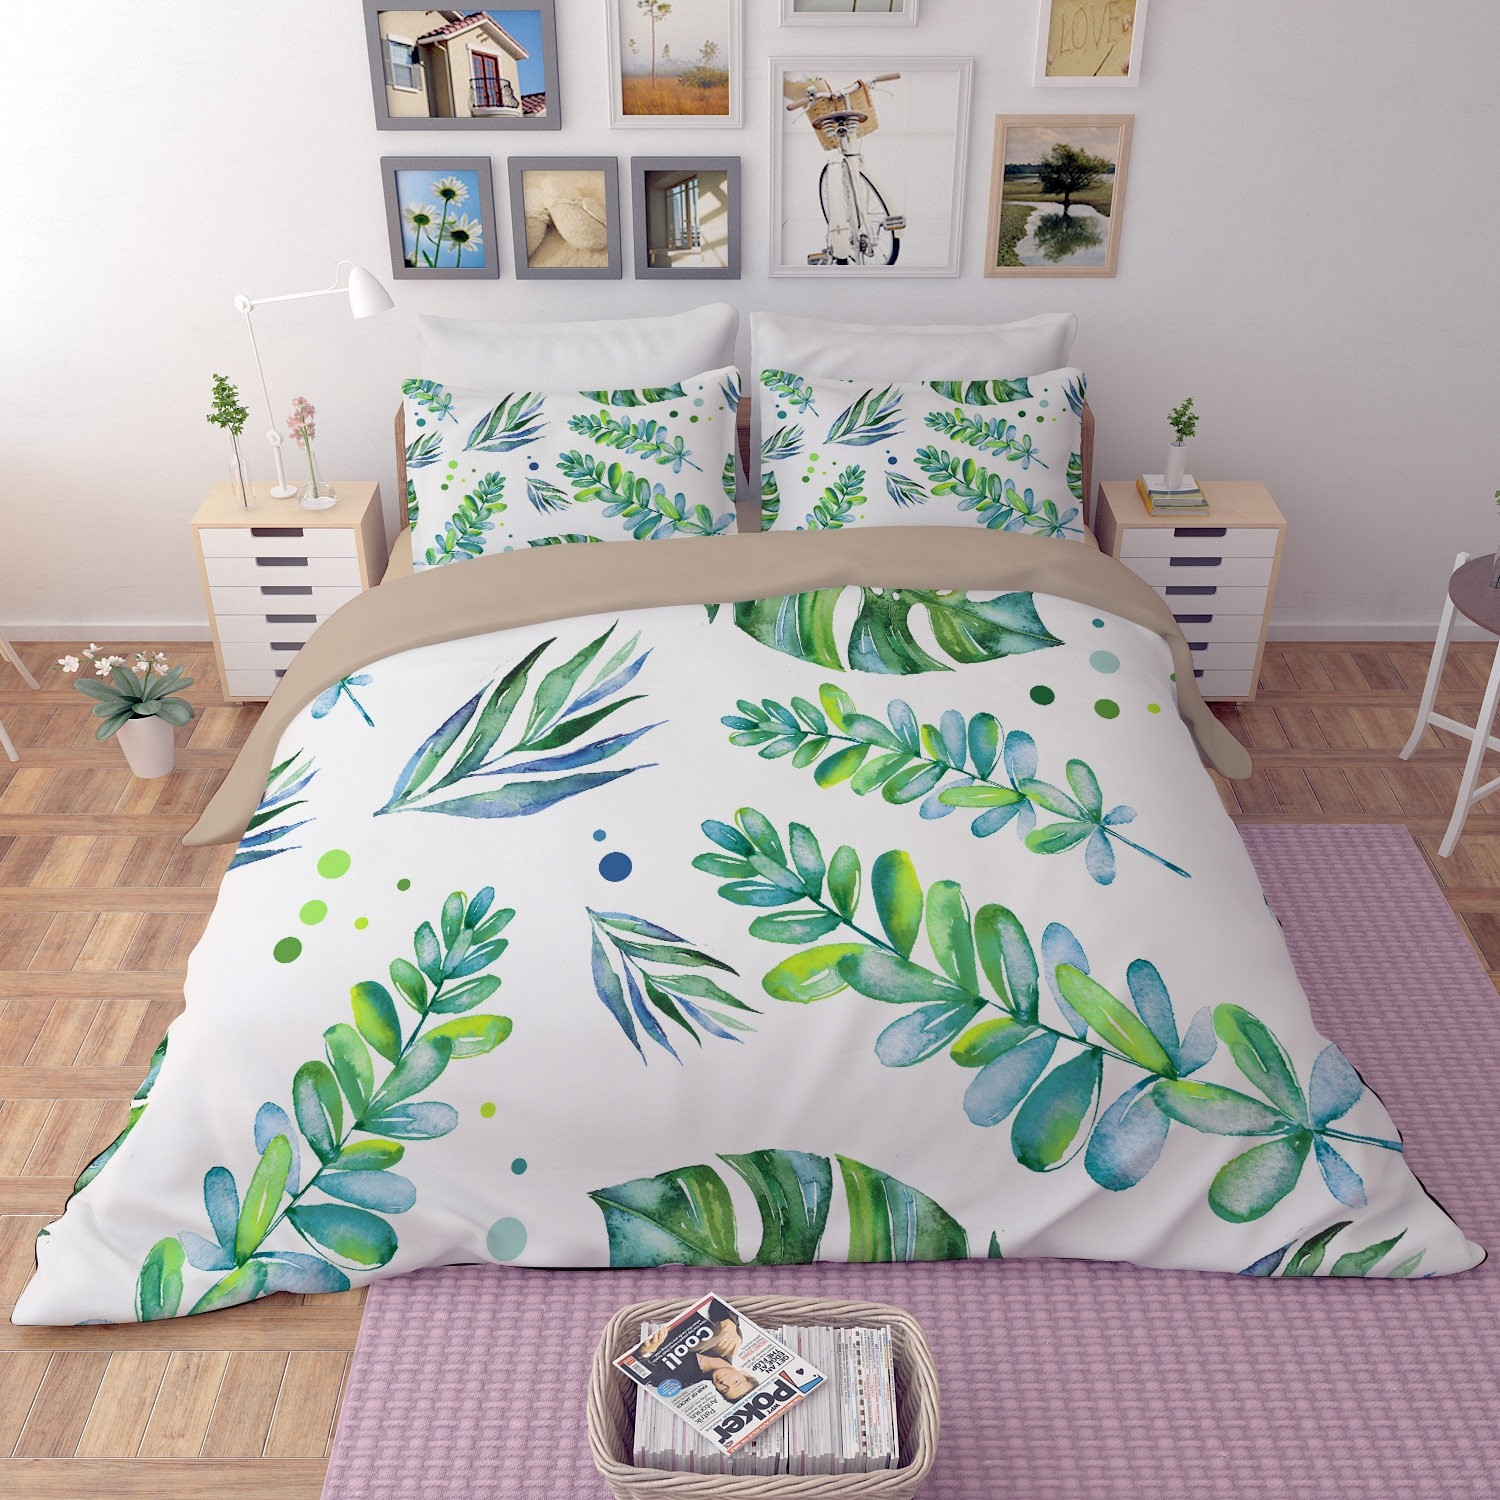 5 Green Wedding Decorations That Will Leave You Speechless: Leaves Duvet Cover Set Bedding